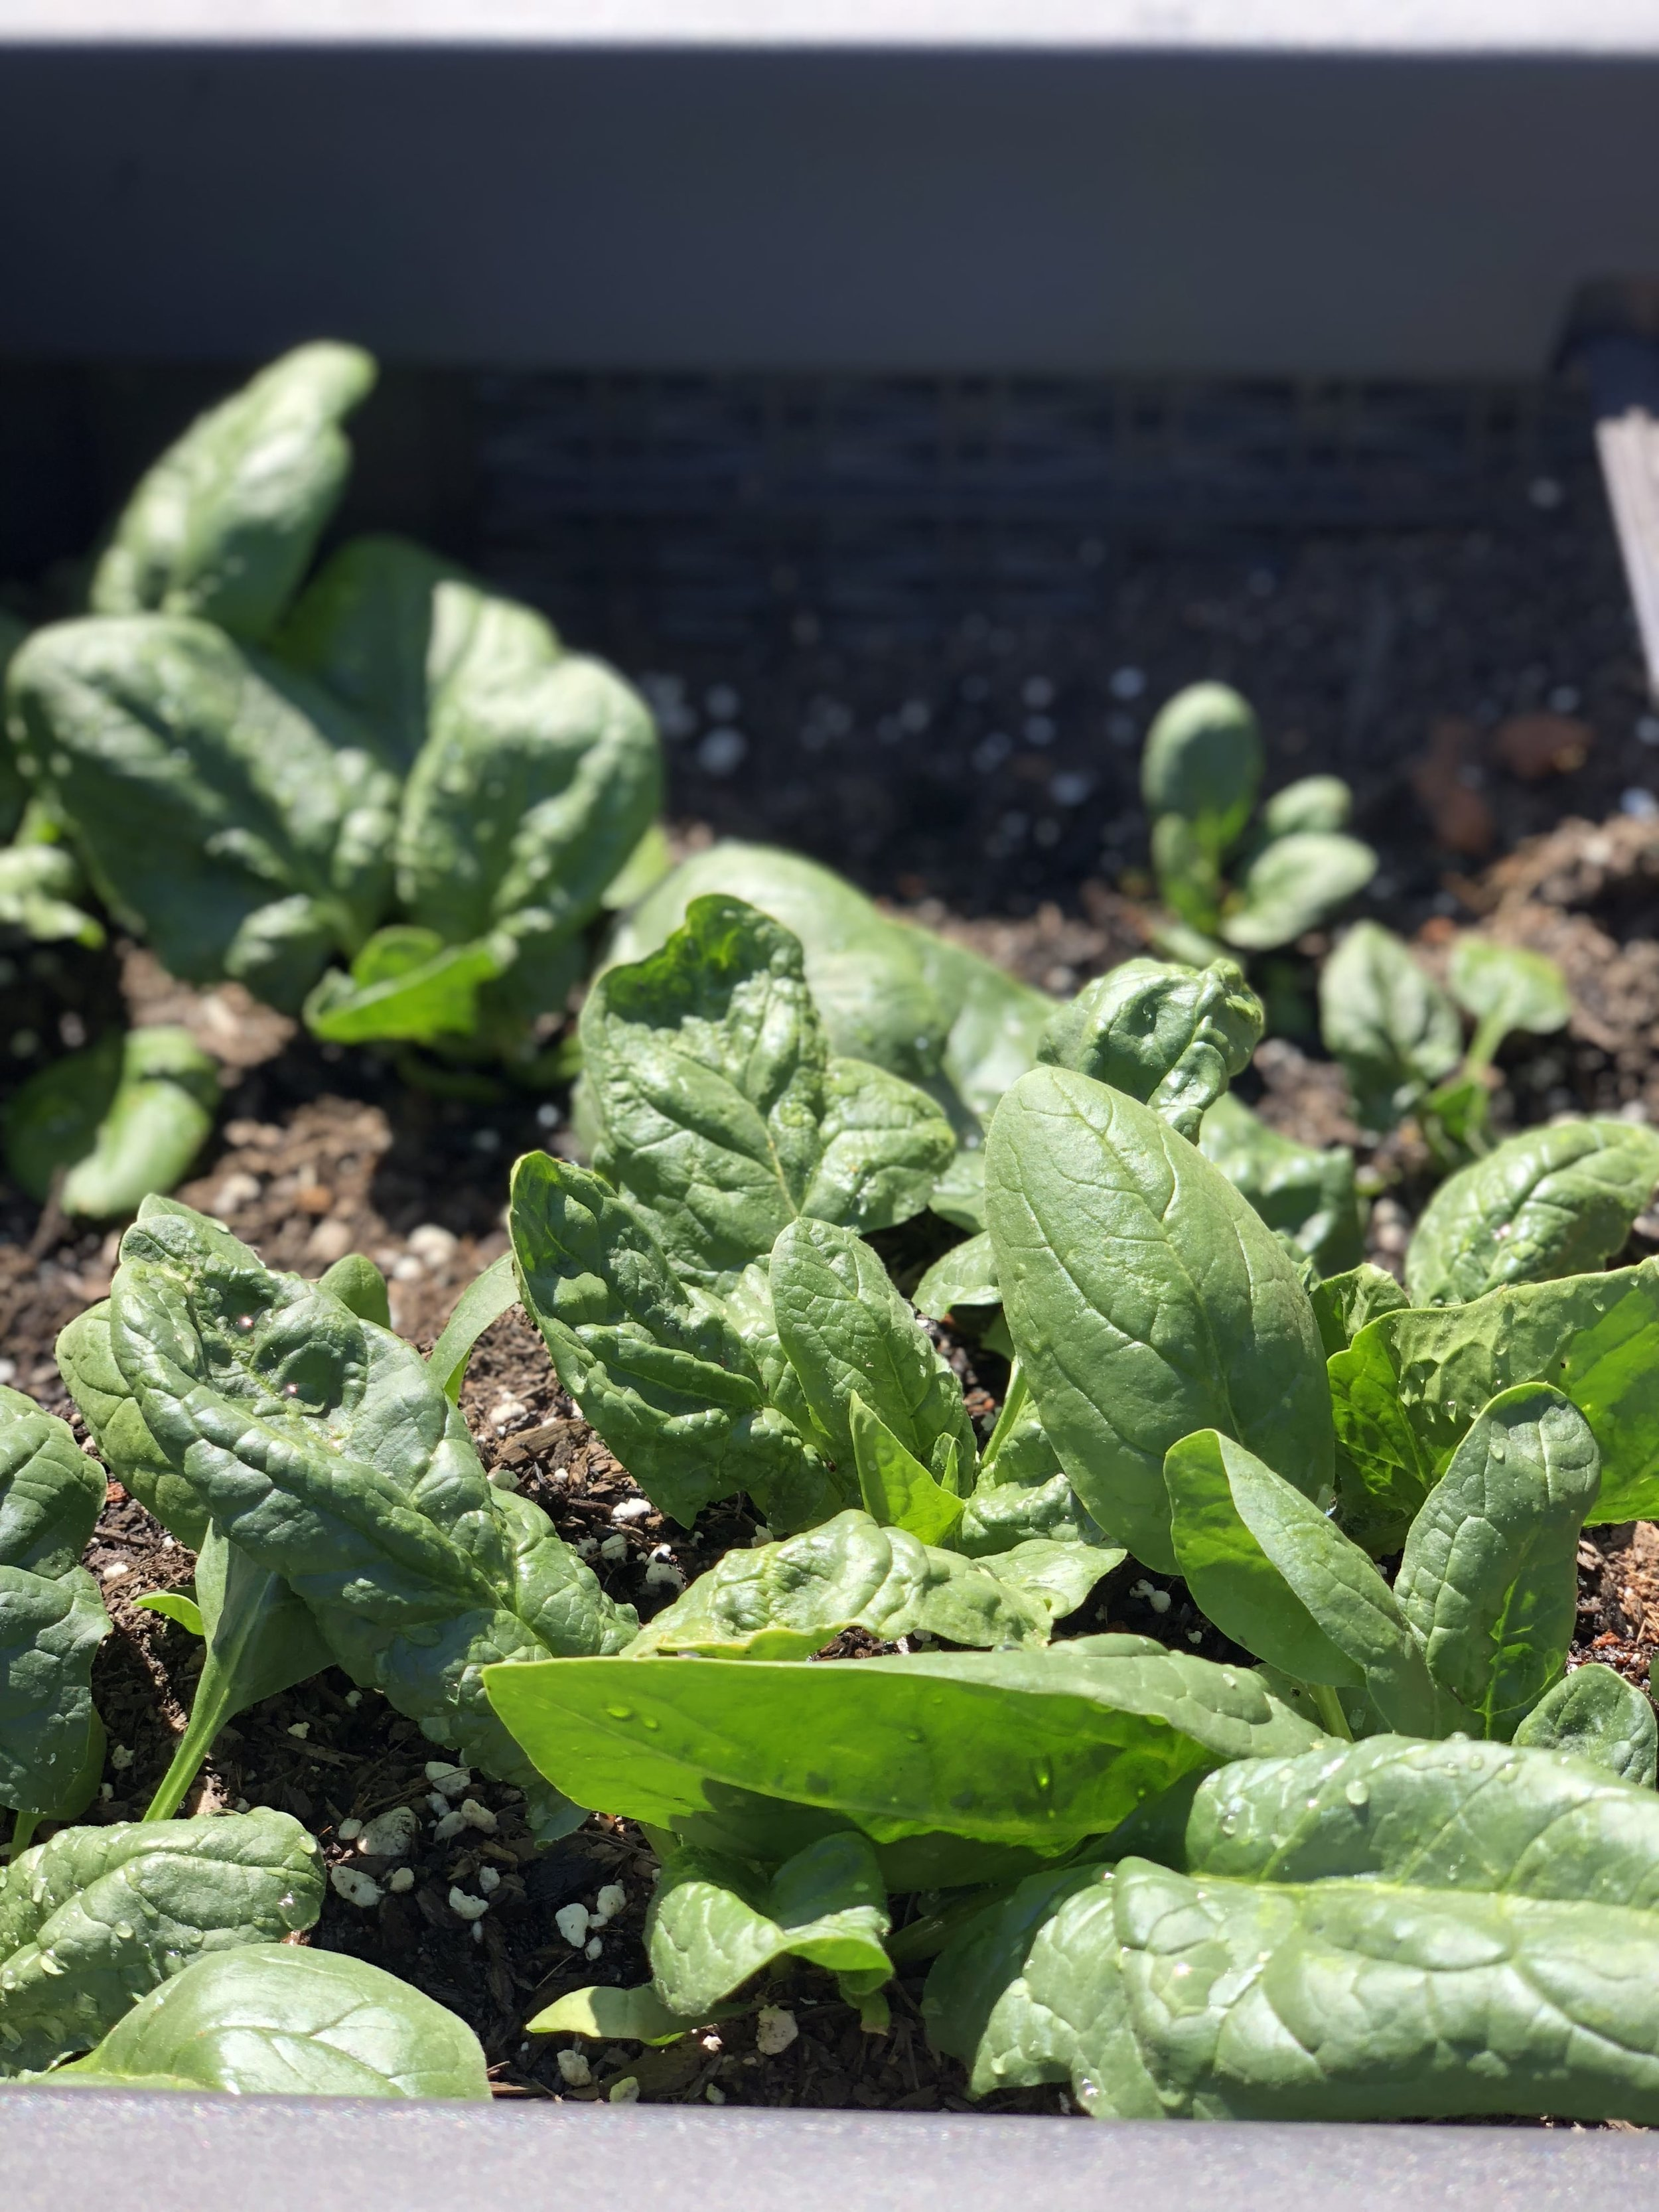 My zero-waste garden for composting and growing some spinach